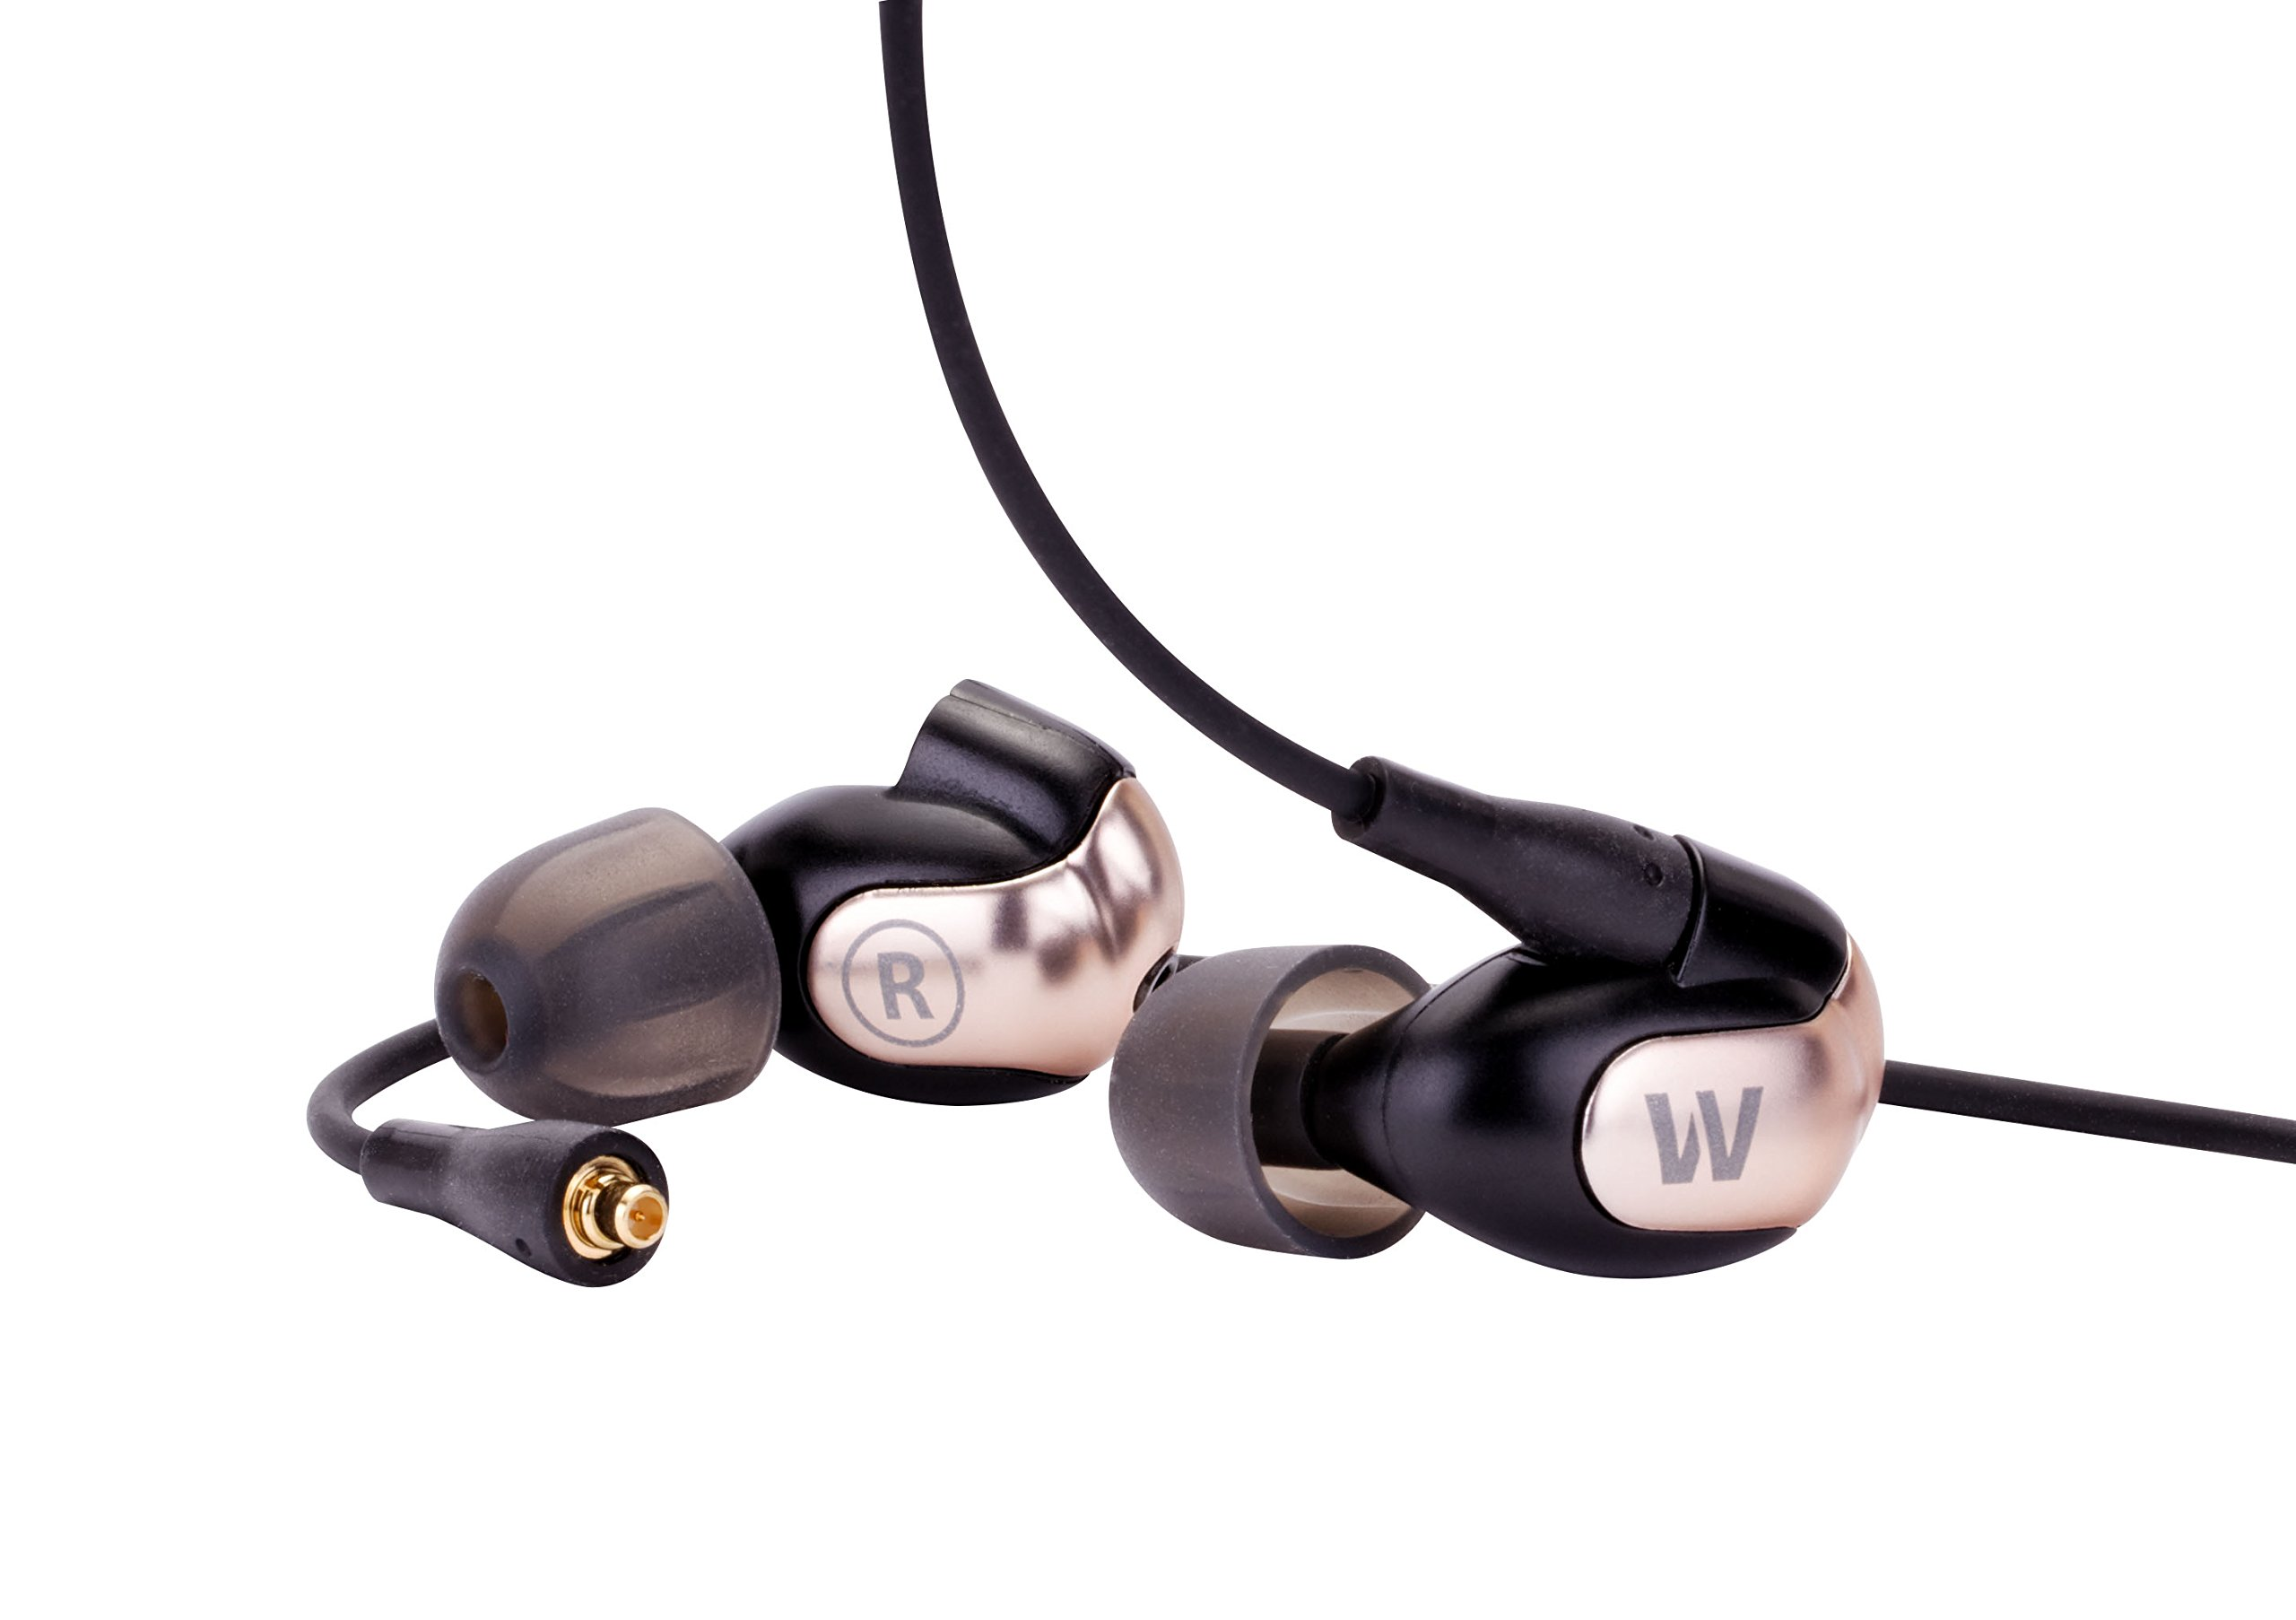 Westone W60 Six-Driver True-Fit Earphones with Westone Bluetooth Cable and 3 Button MFi Cable with Microphone by Westone